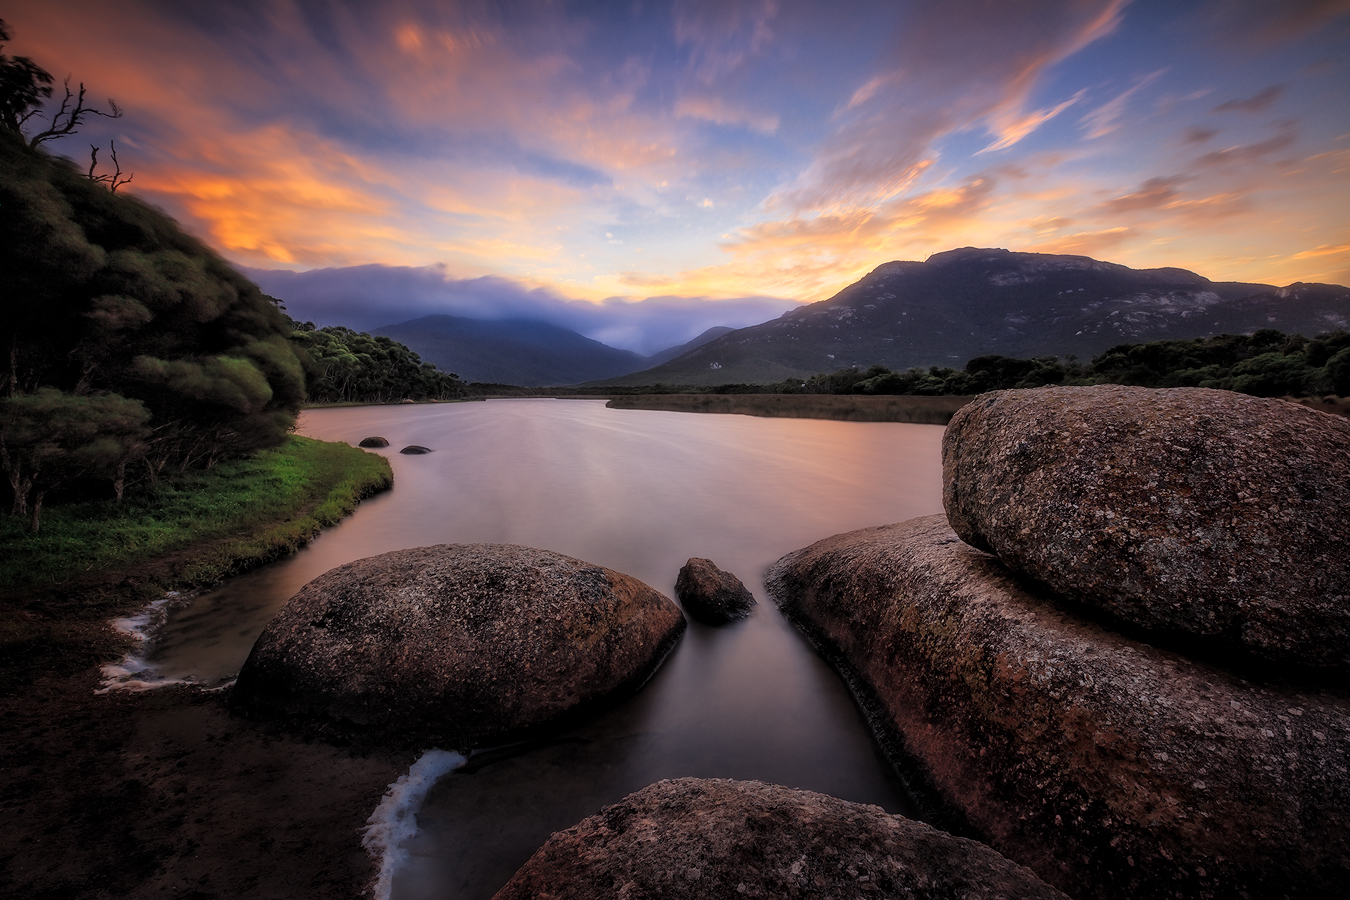 Tidal River - Wilsons Prom | Landscape Photography Masterclass | We Are Raw Photography Tours